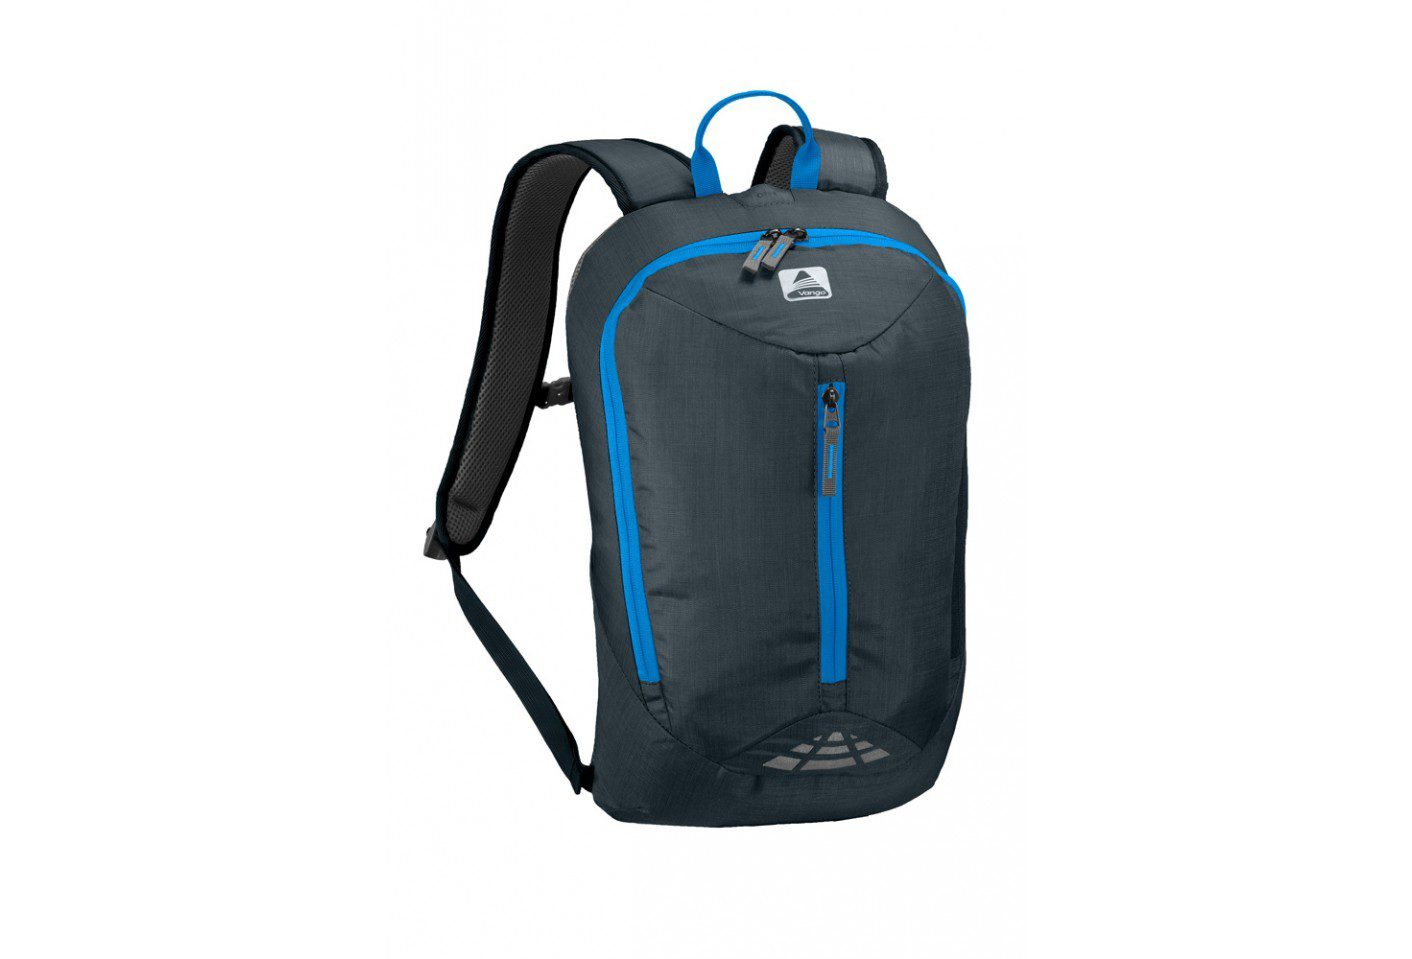 Vango Lyt 20 Backpack - Carbide Grey